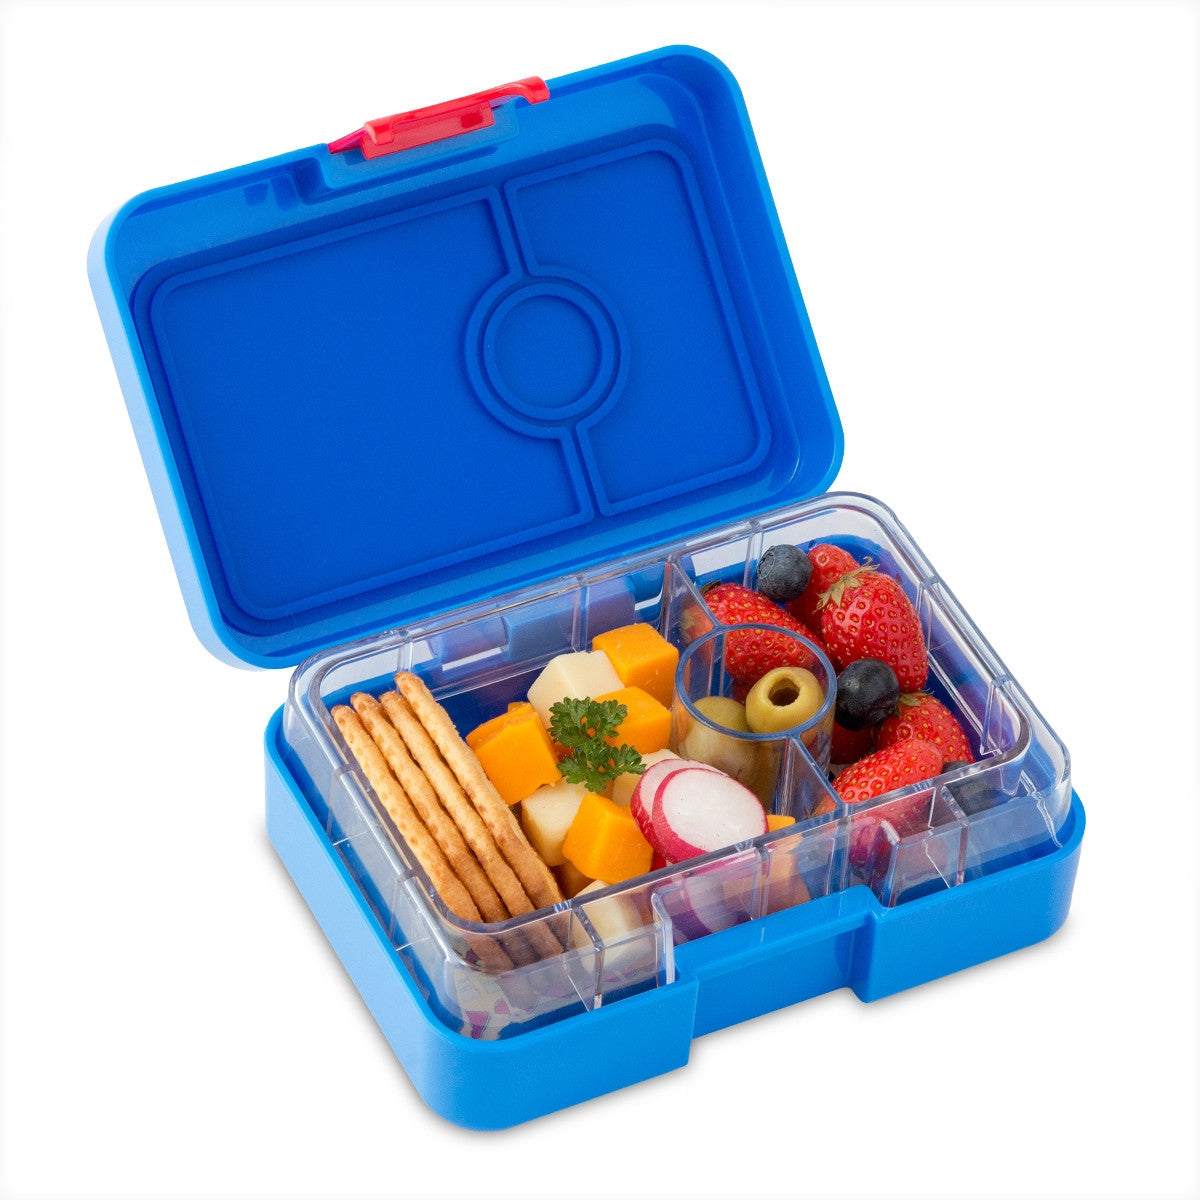 Blue mini snack box open and filled.